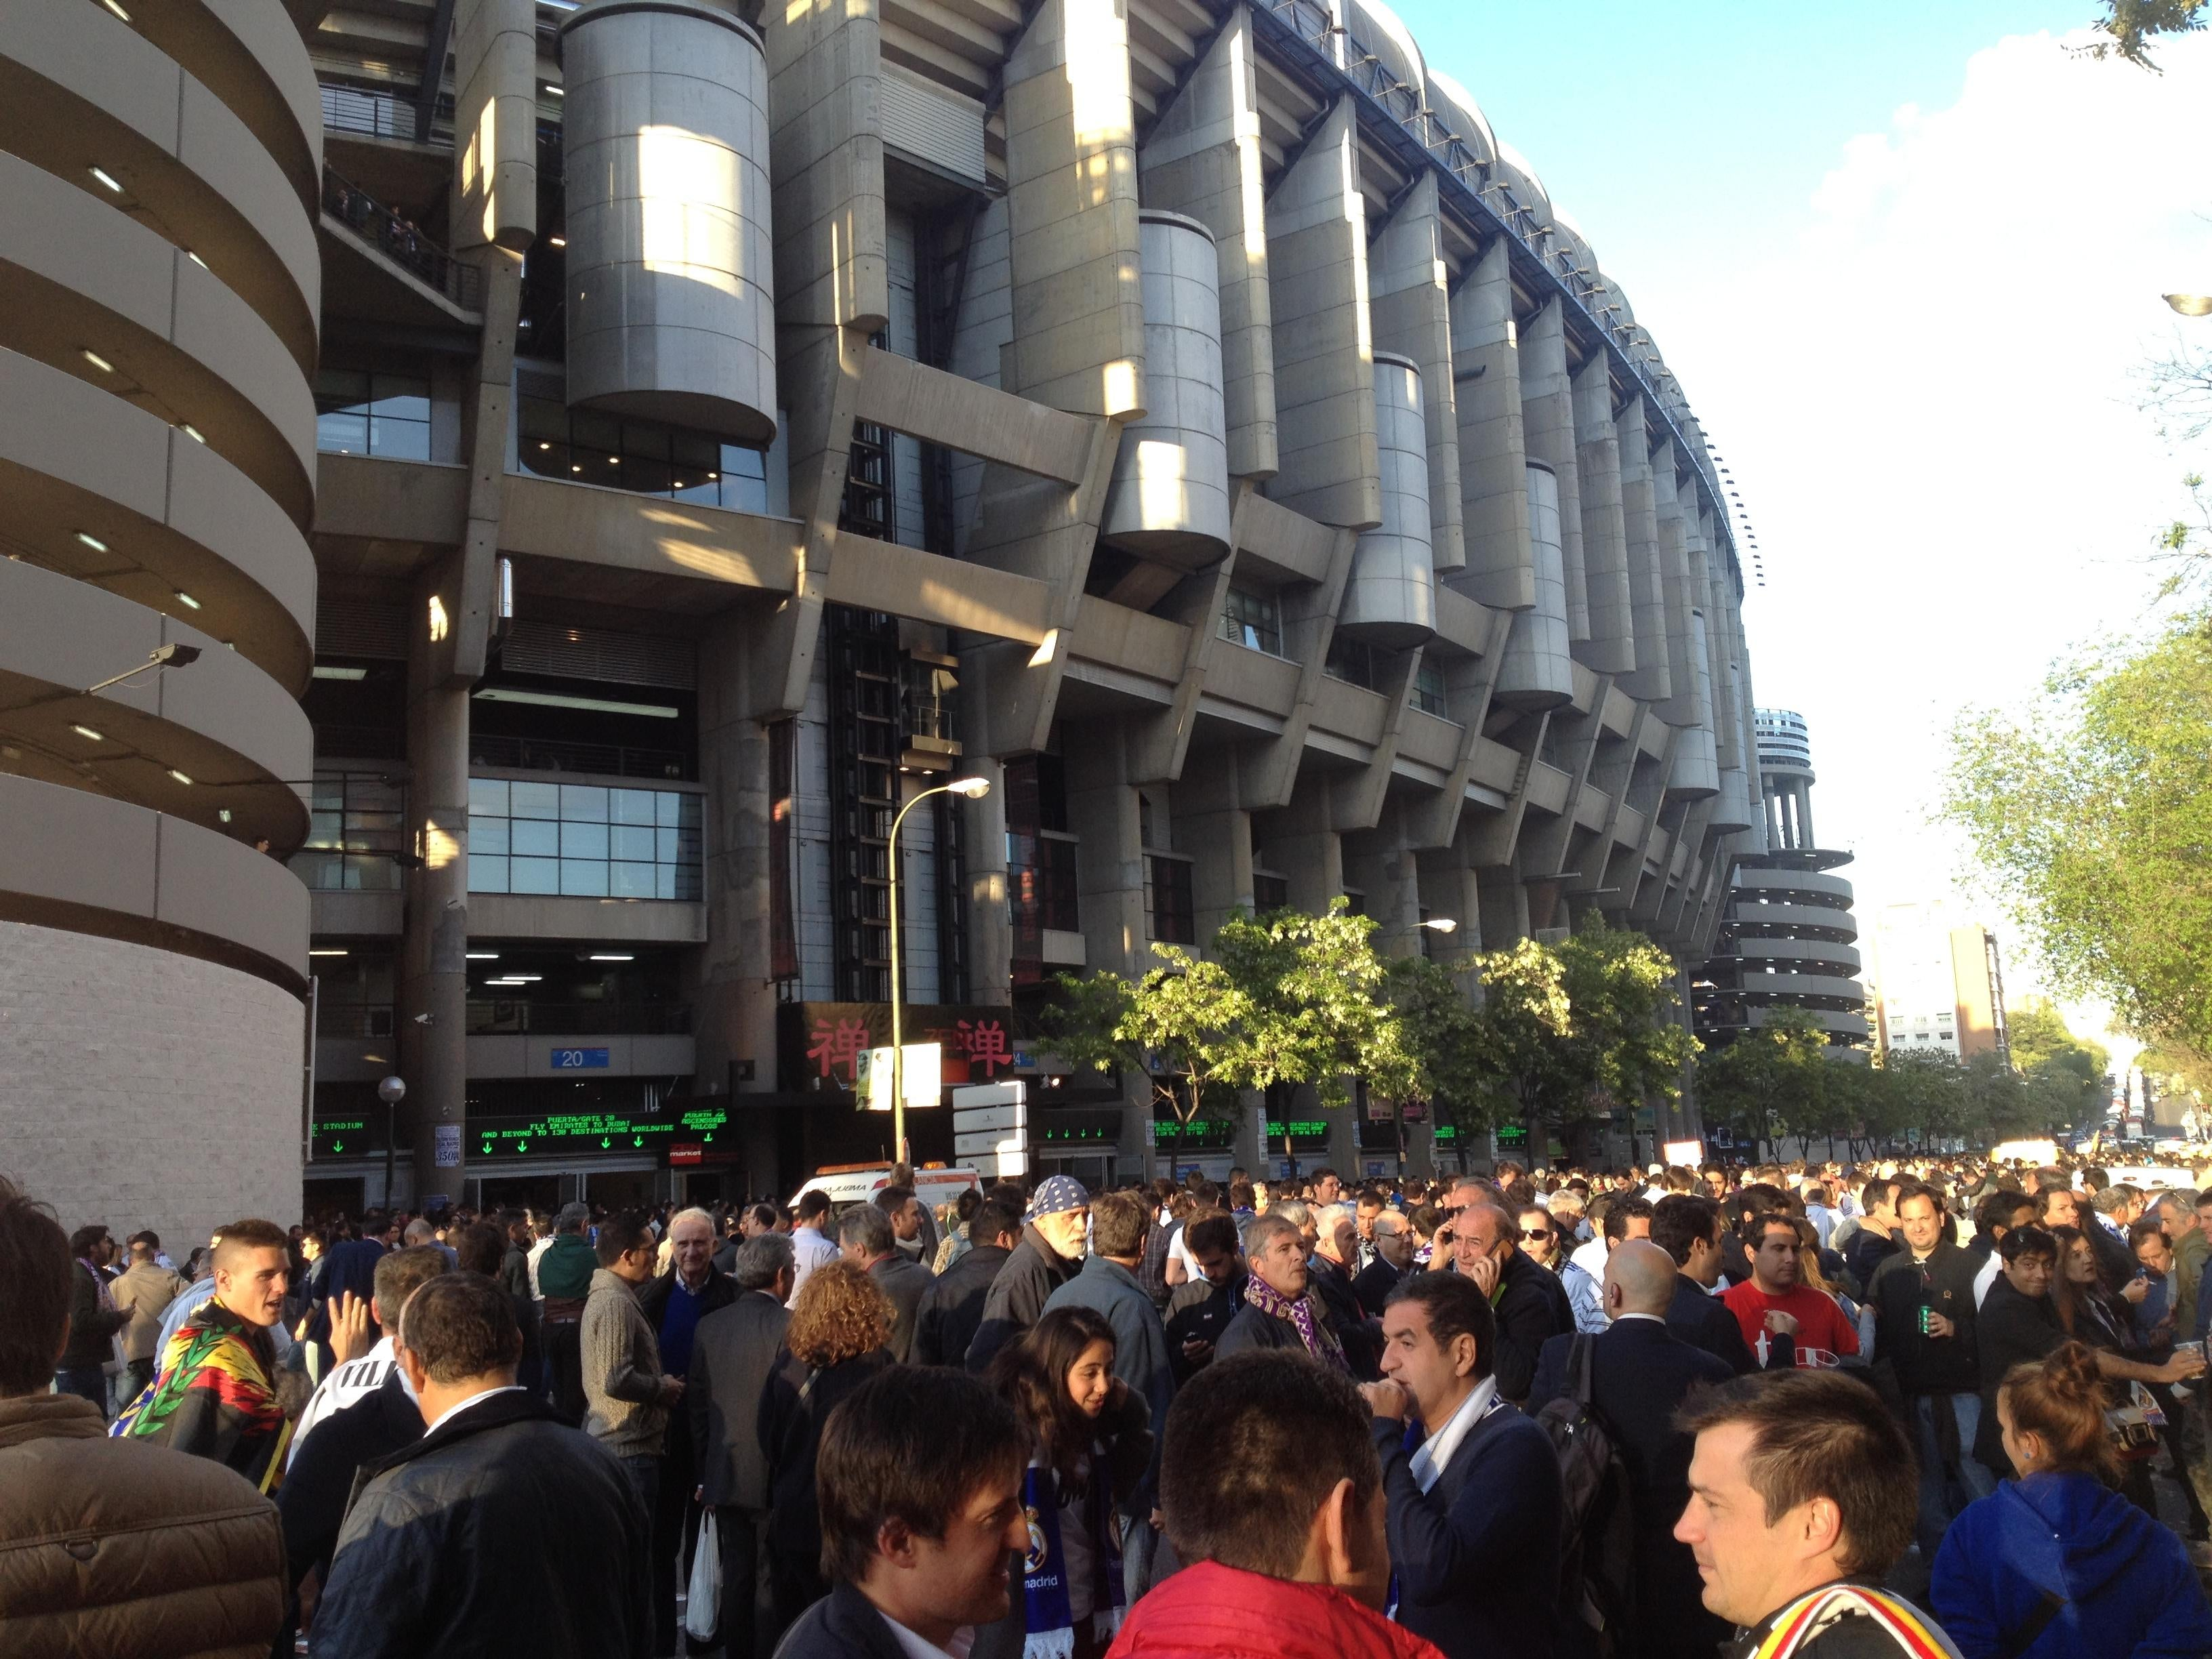 Multitud en Estadio Santiago Bernabéu